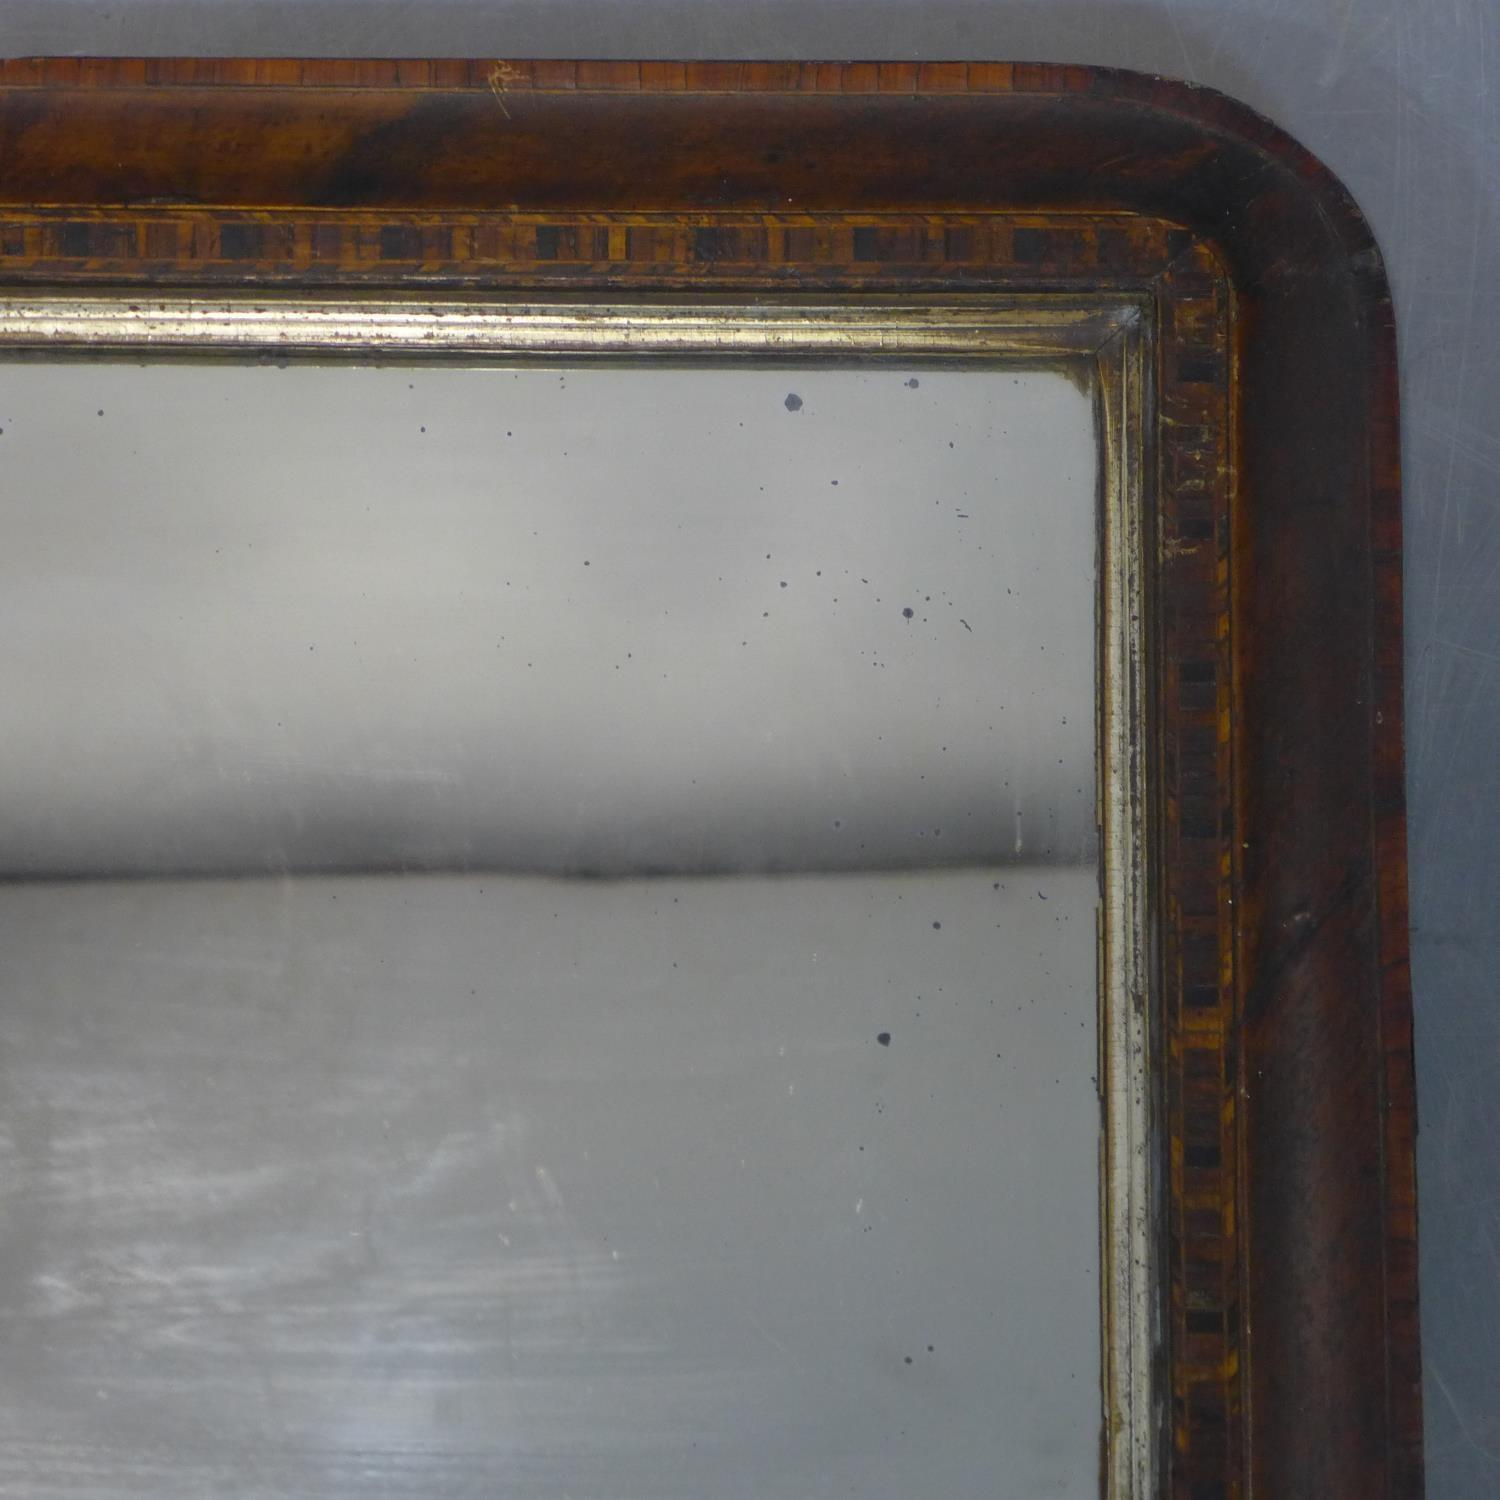 Lot 171 - An inlaid walnut overmantle mirror, 43 x 72cm